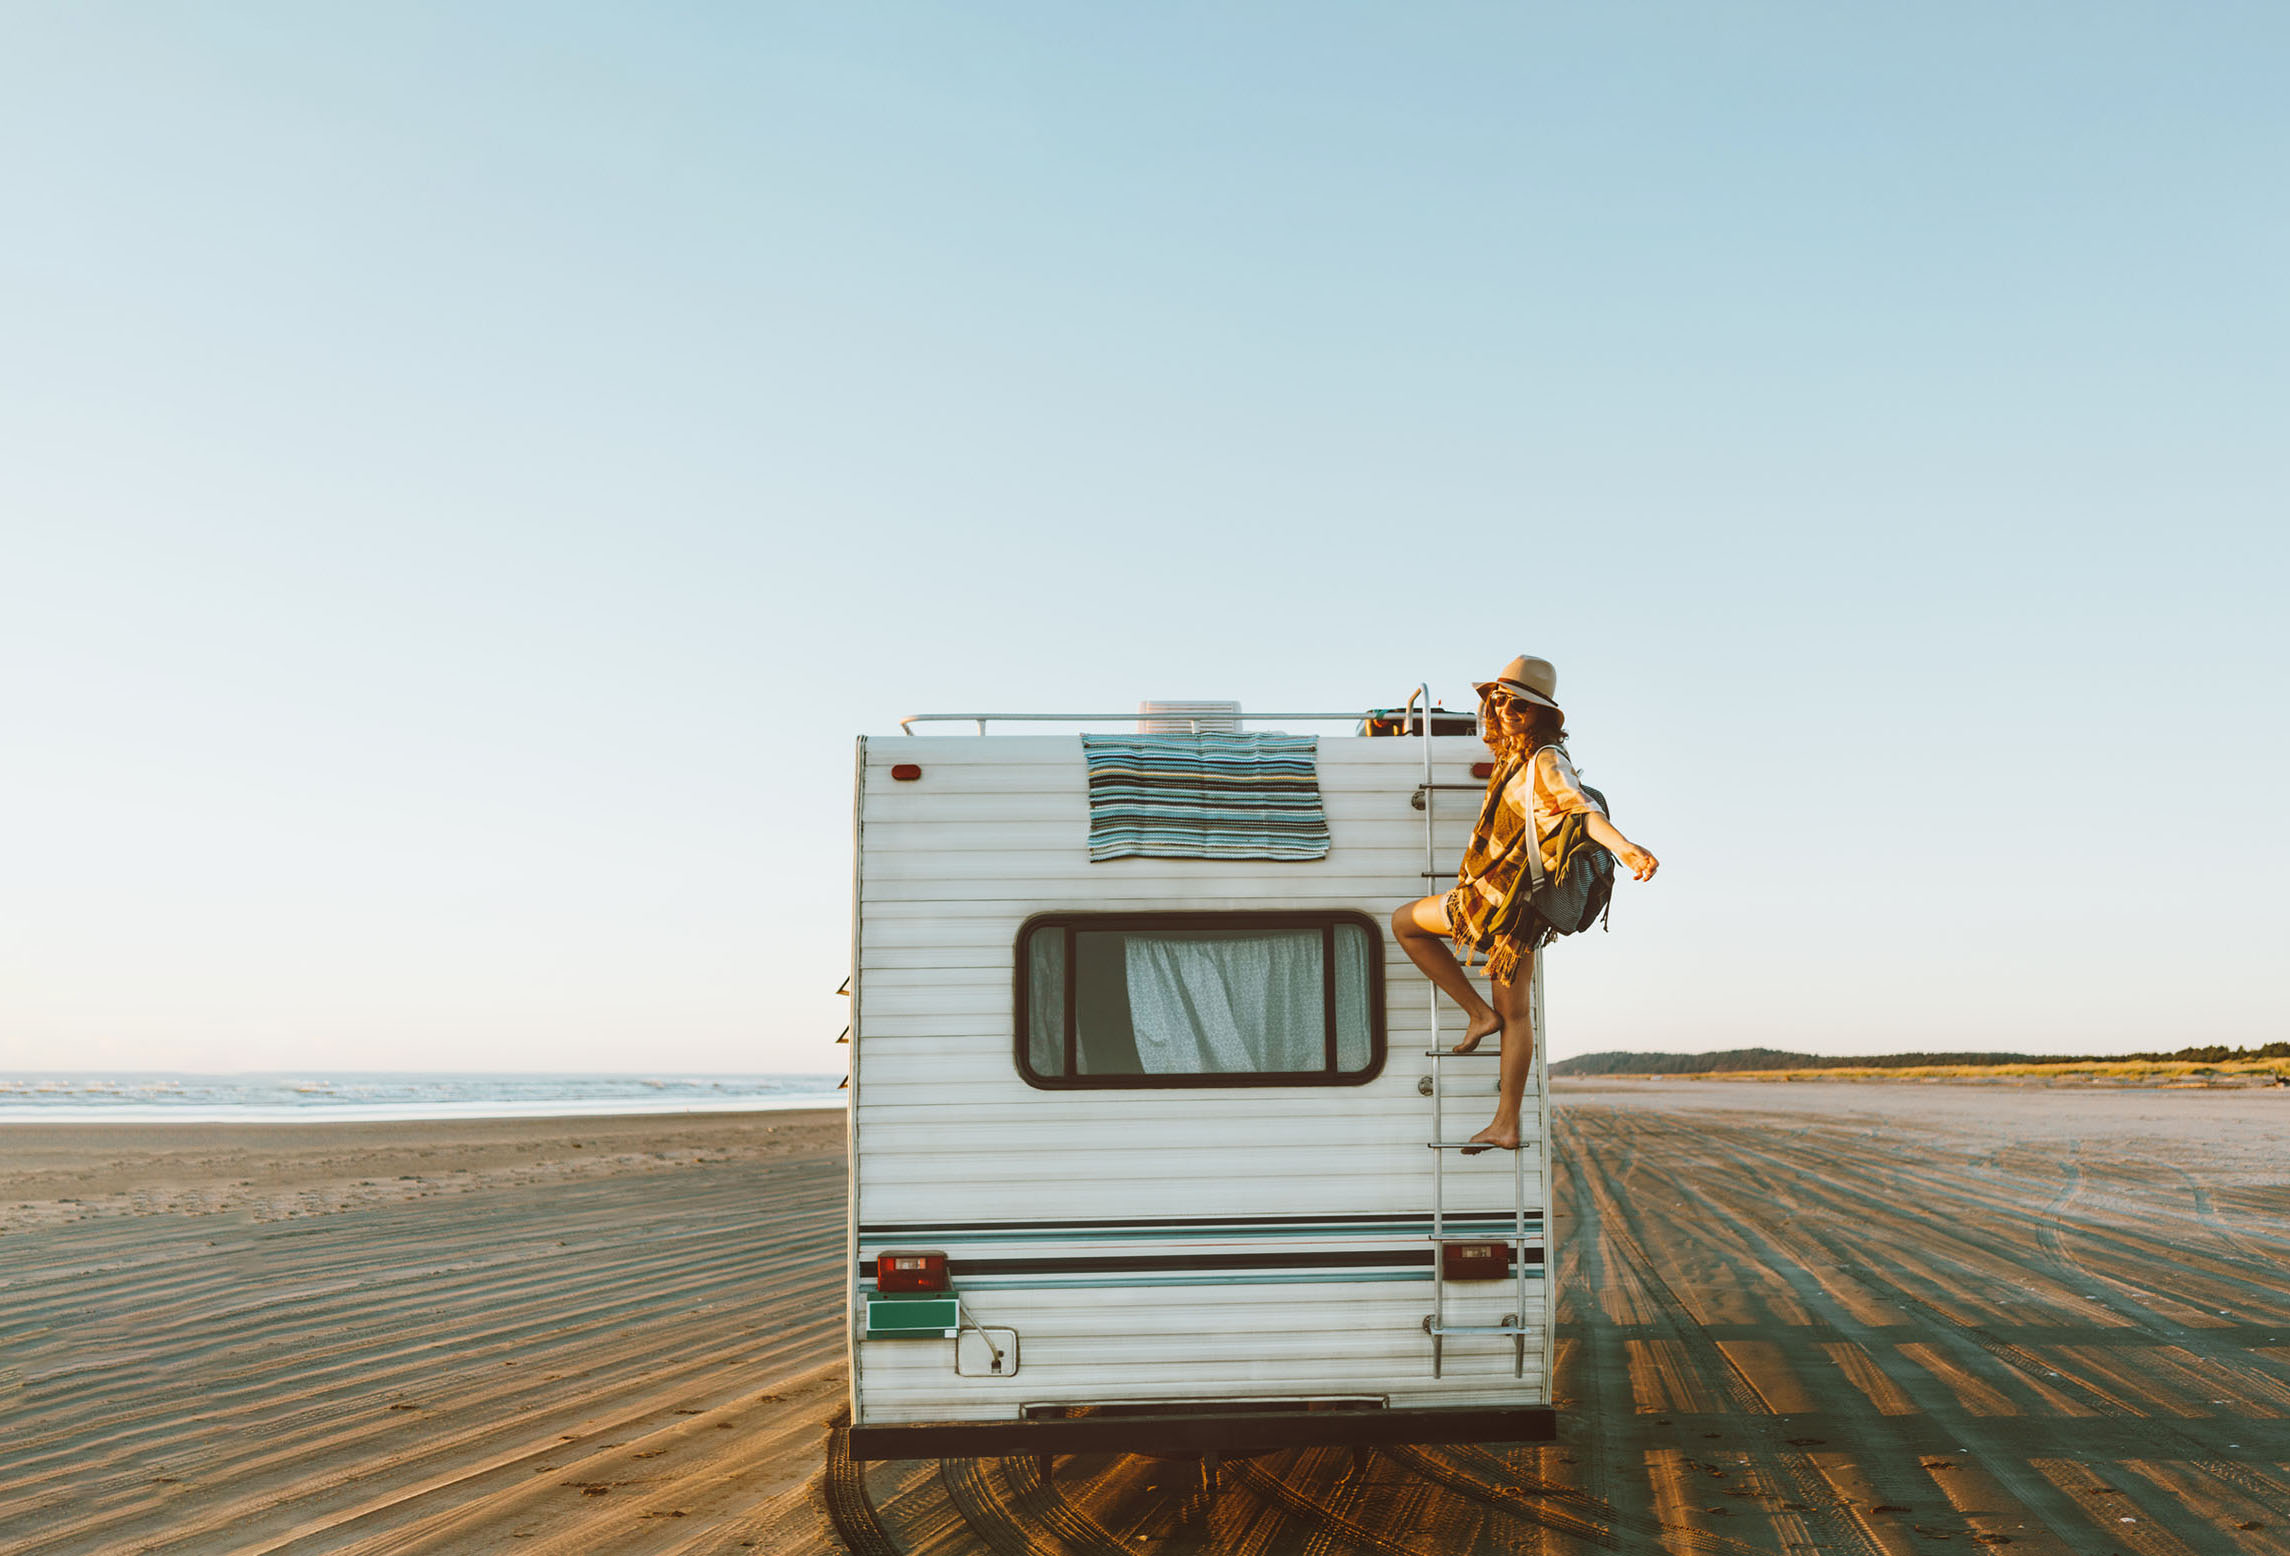 Woman climbing on roof of RV